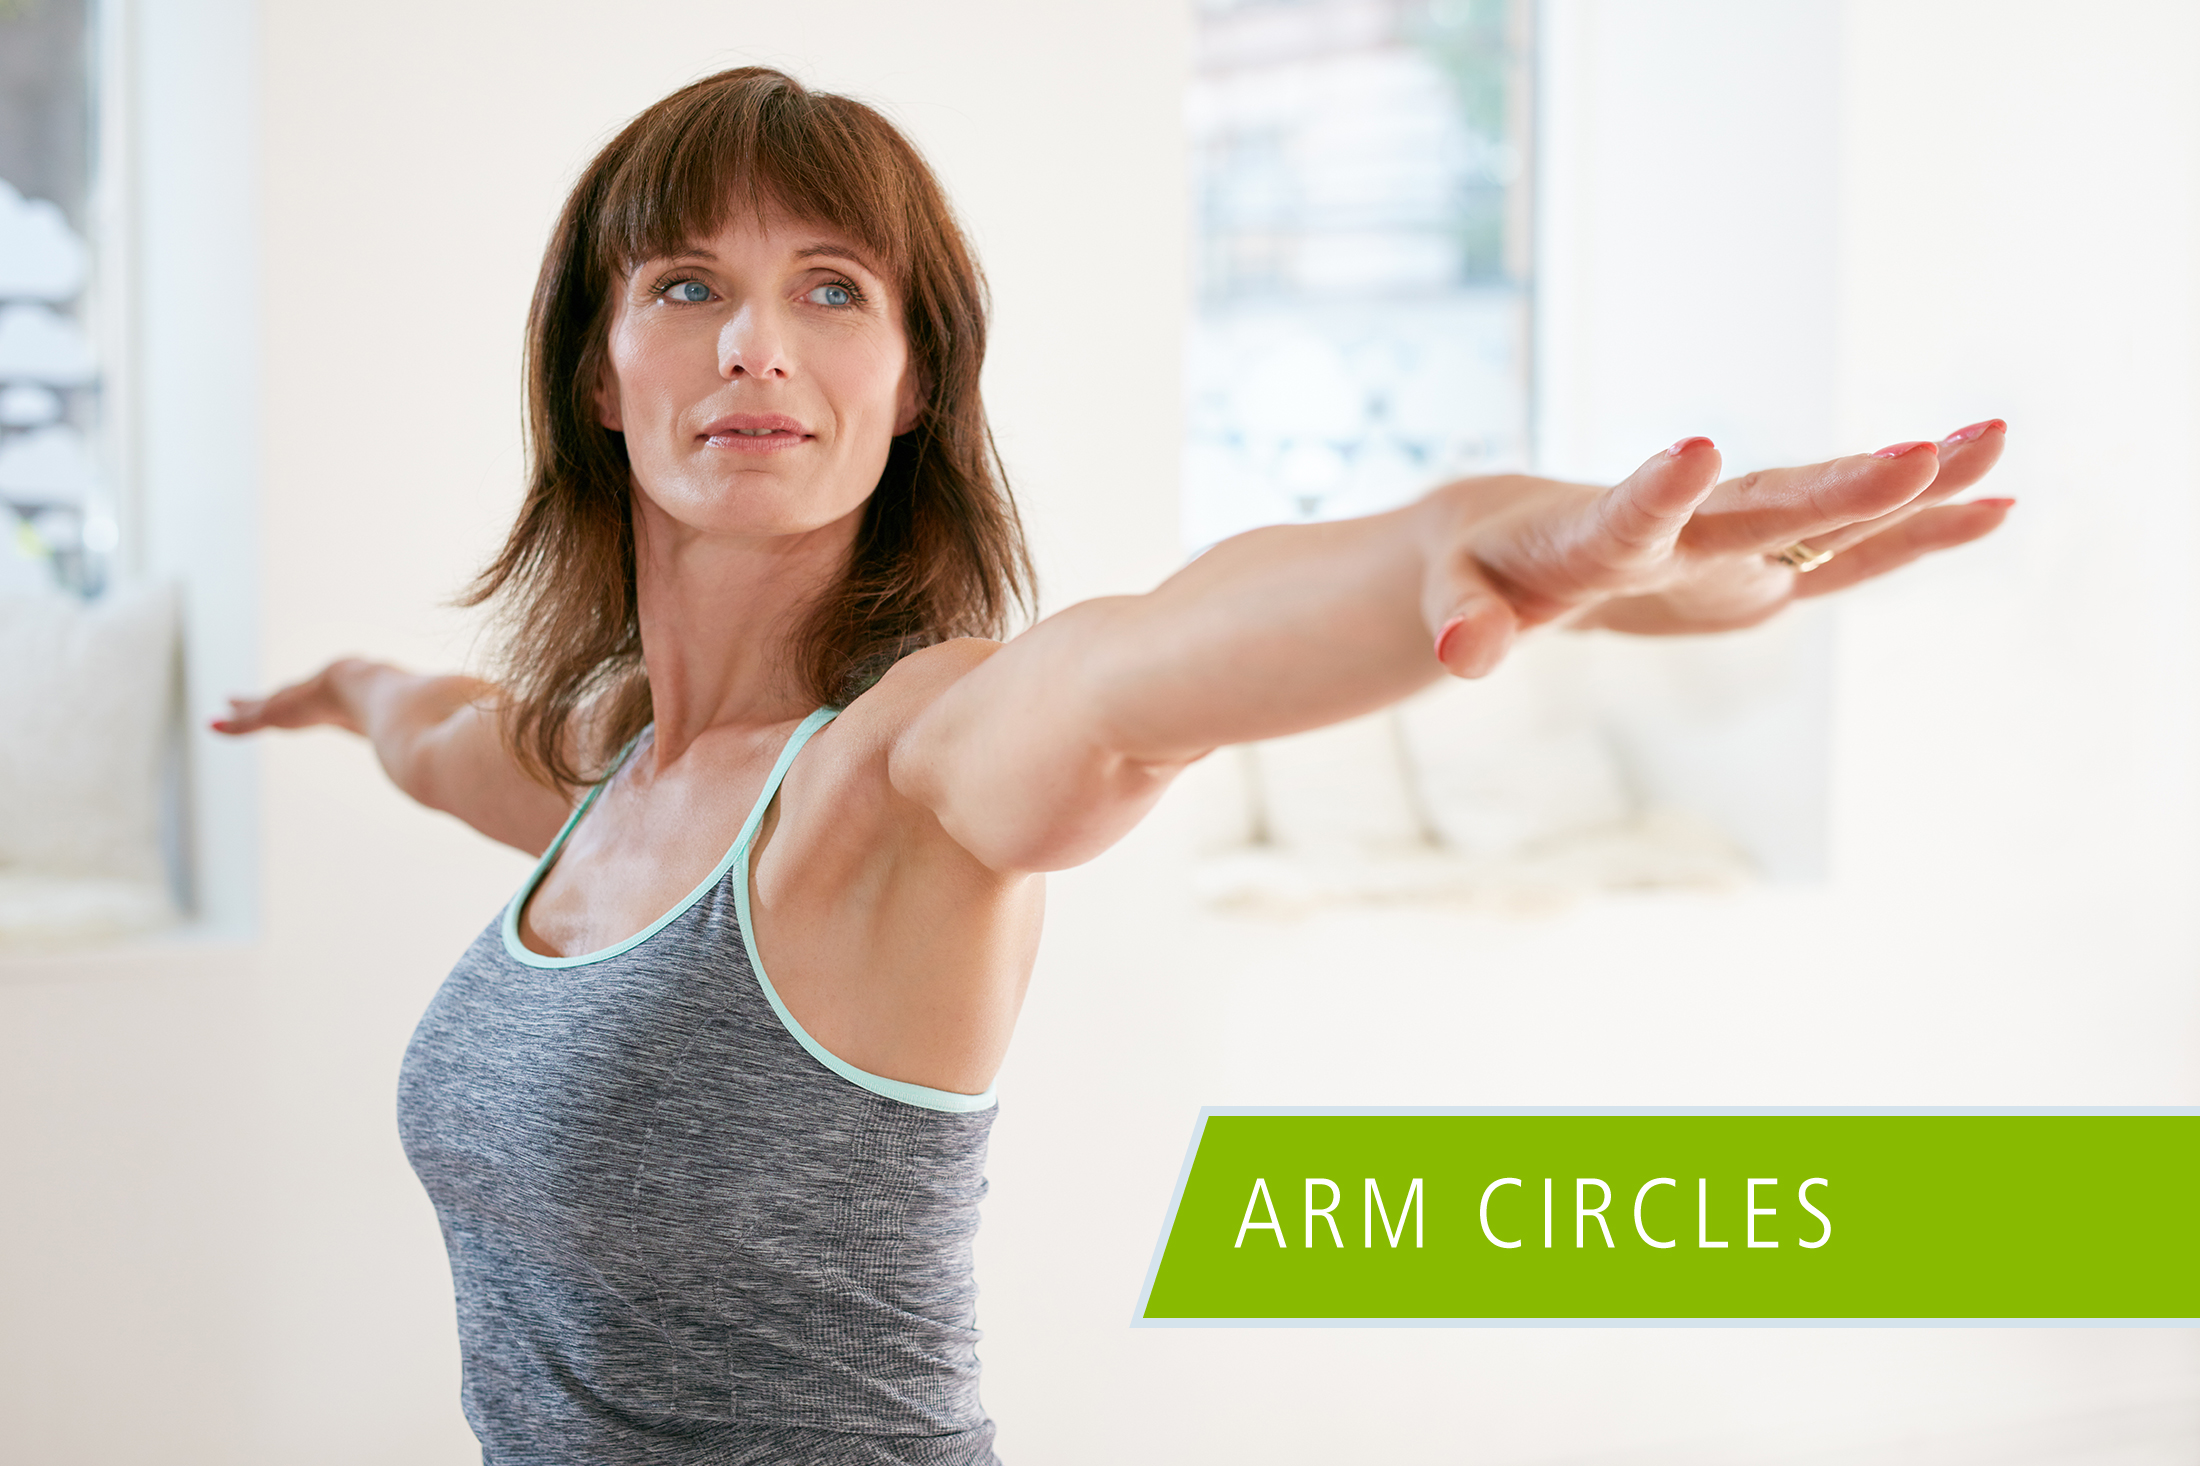 Arm Circles Exercises